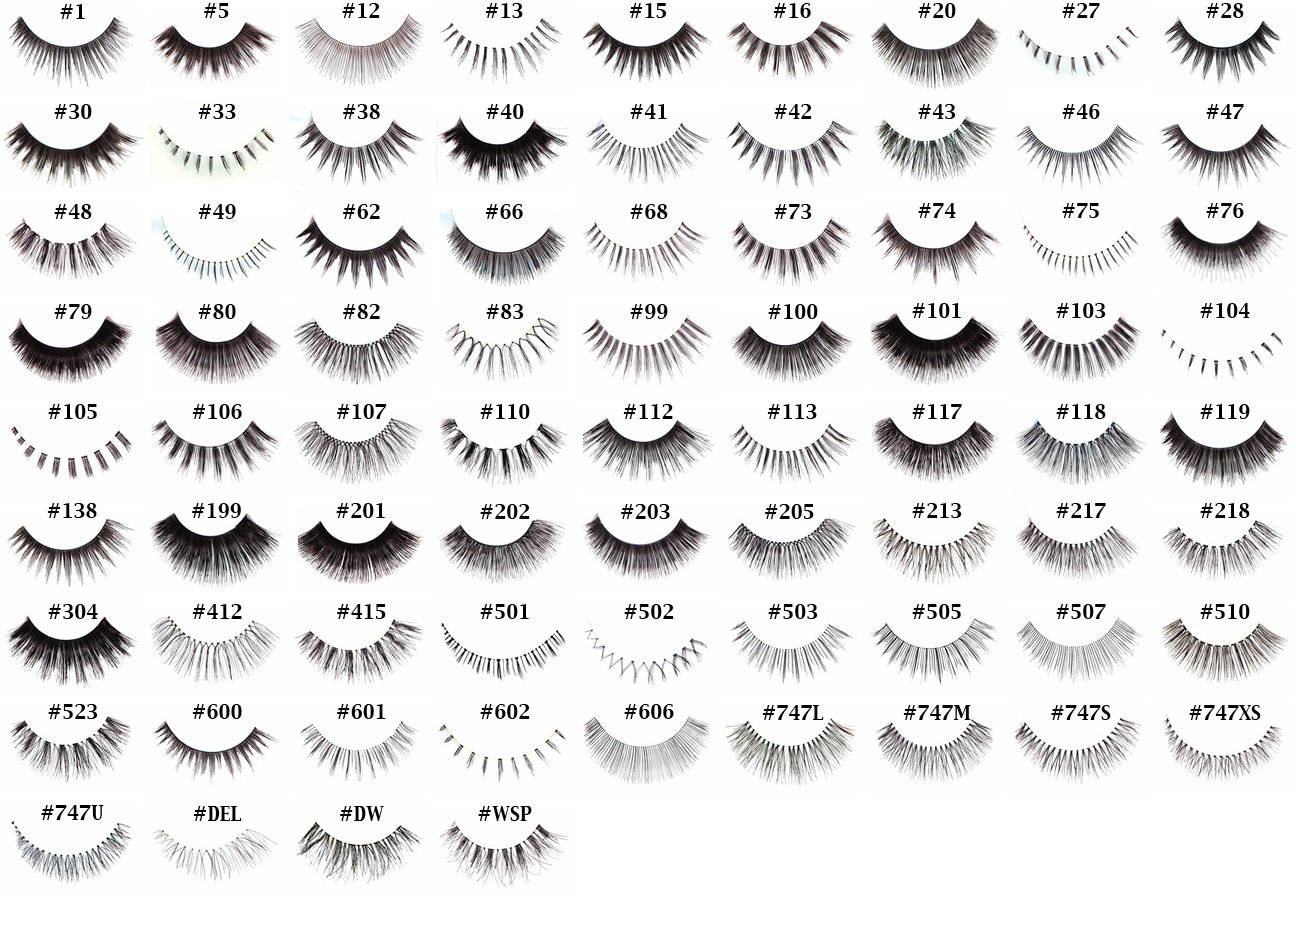 Pick Any 40 Pairs of Red Cherry False Eyelashes (exclude DW, WSP, 102, and 605) by Red Cherry